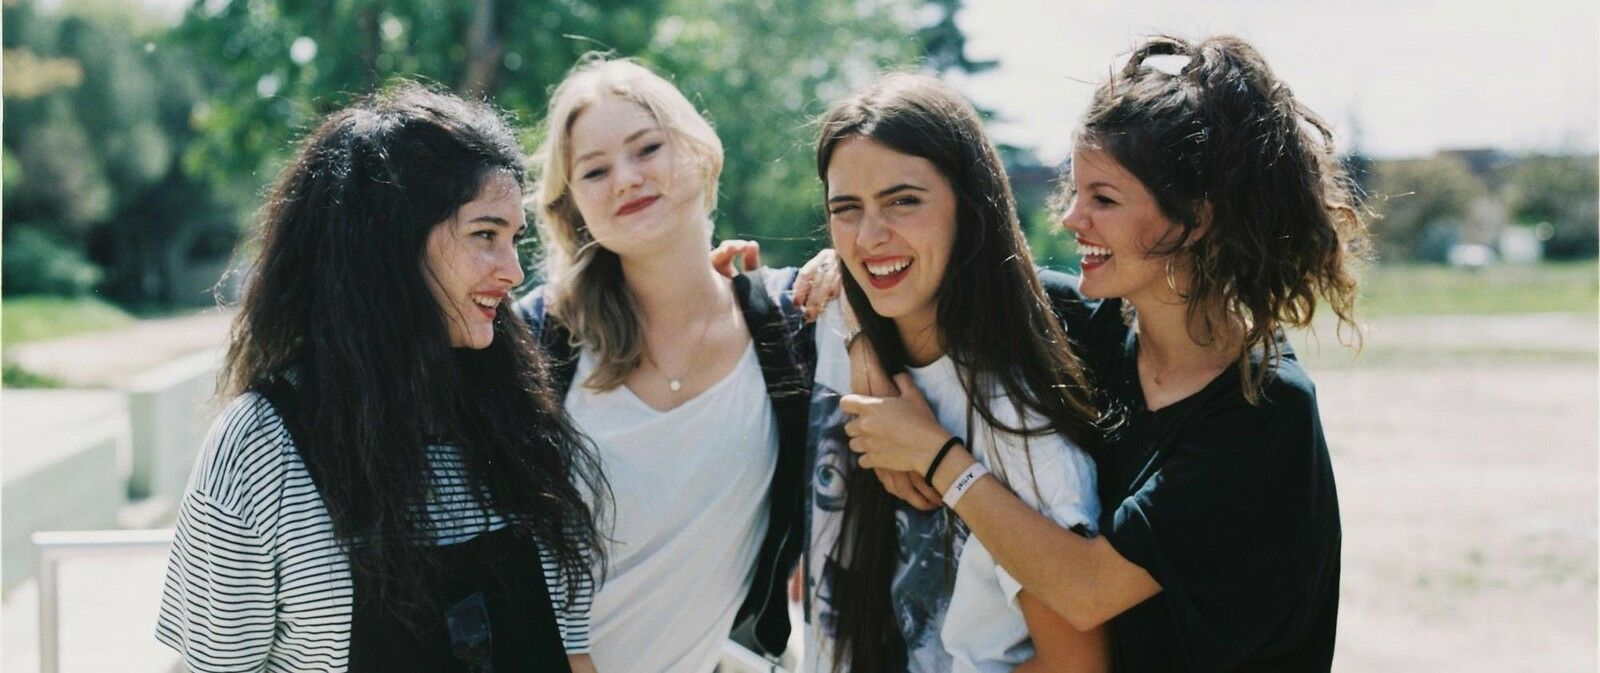 Hinds Tickets (16+ Event)